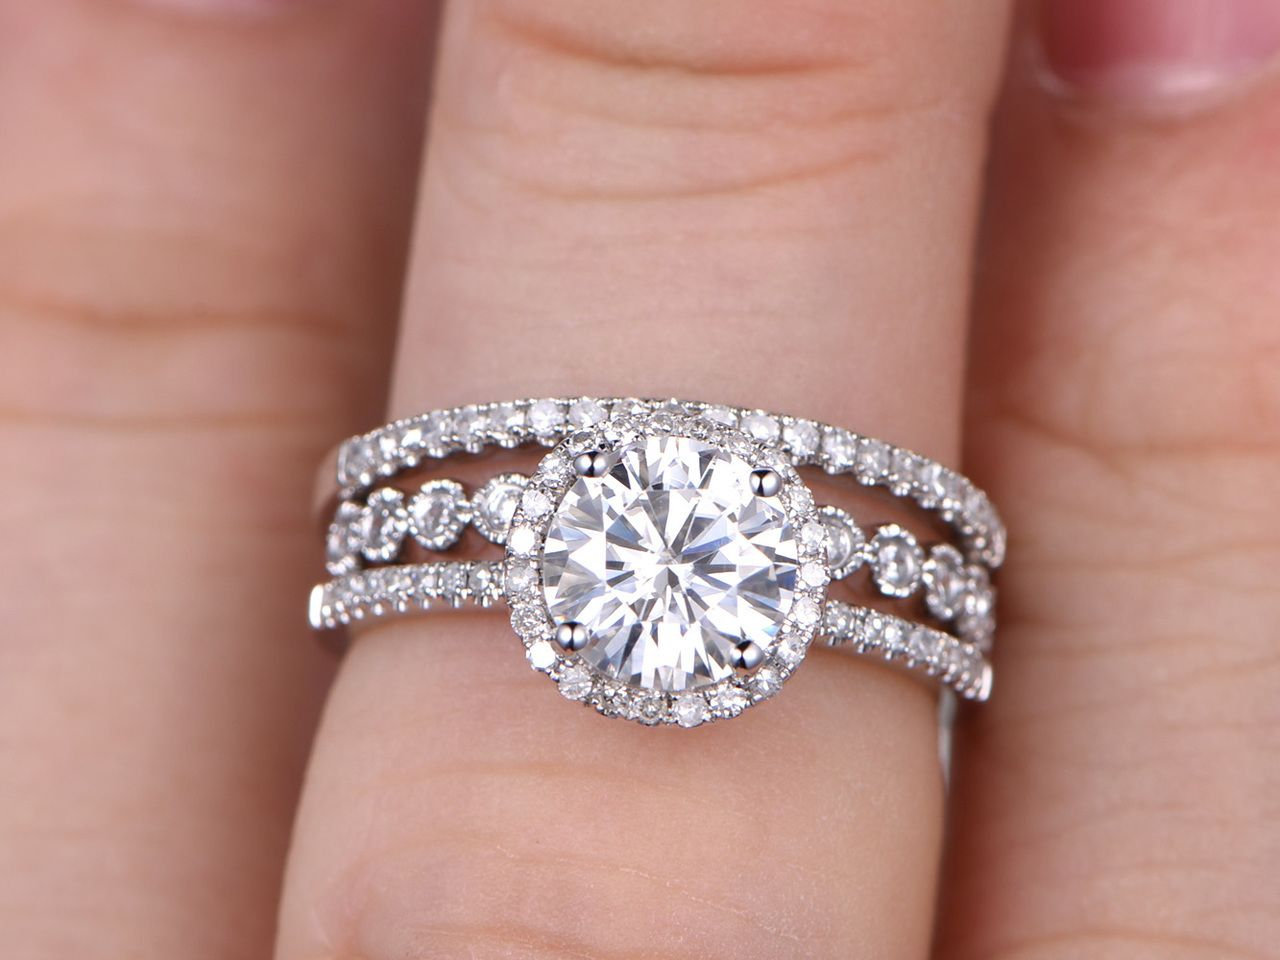 3pcs Moissanite Wedding Ring Set Diamond Matching Band White Gold ...